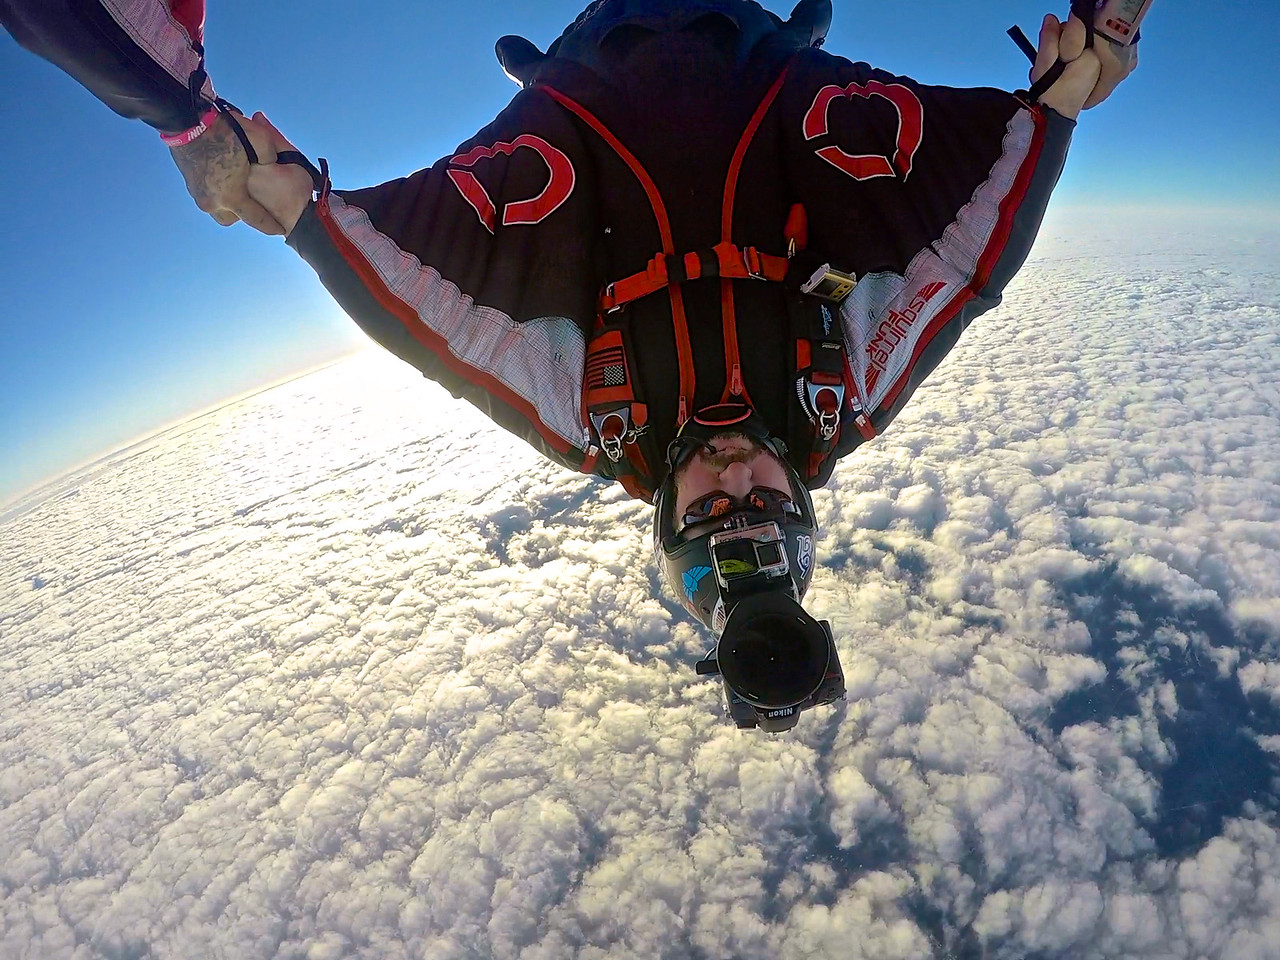 Wingsuit Head down flying and carving